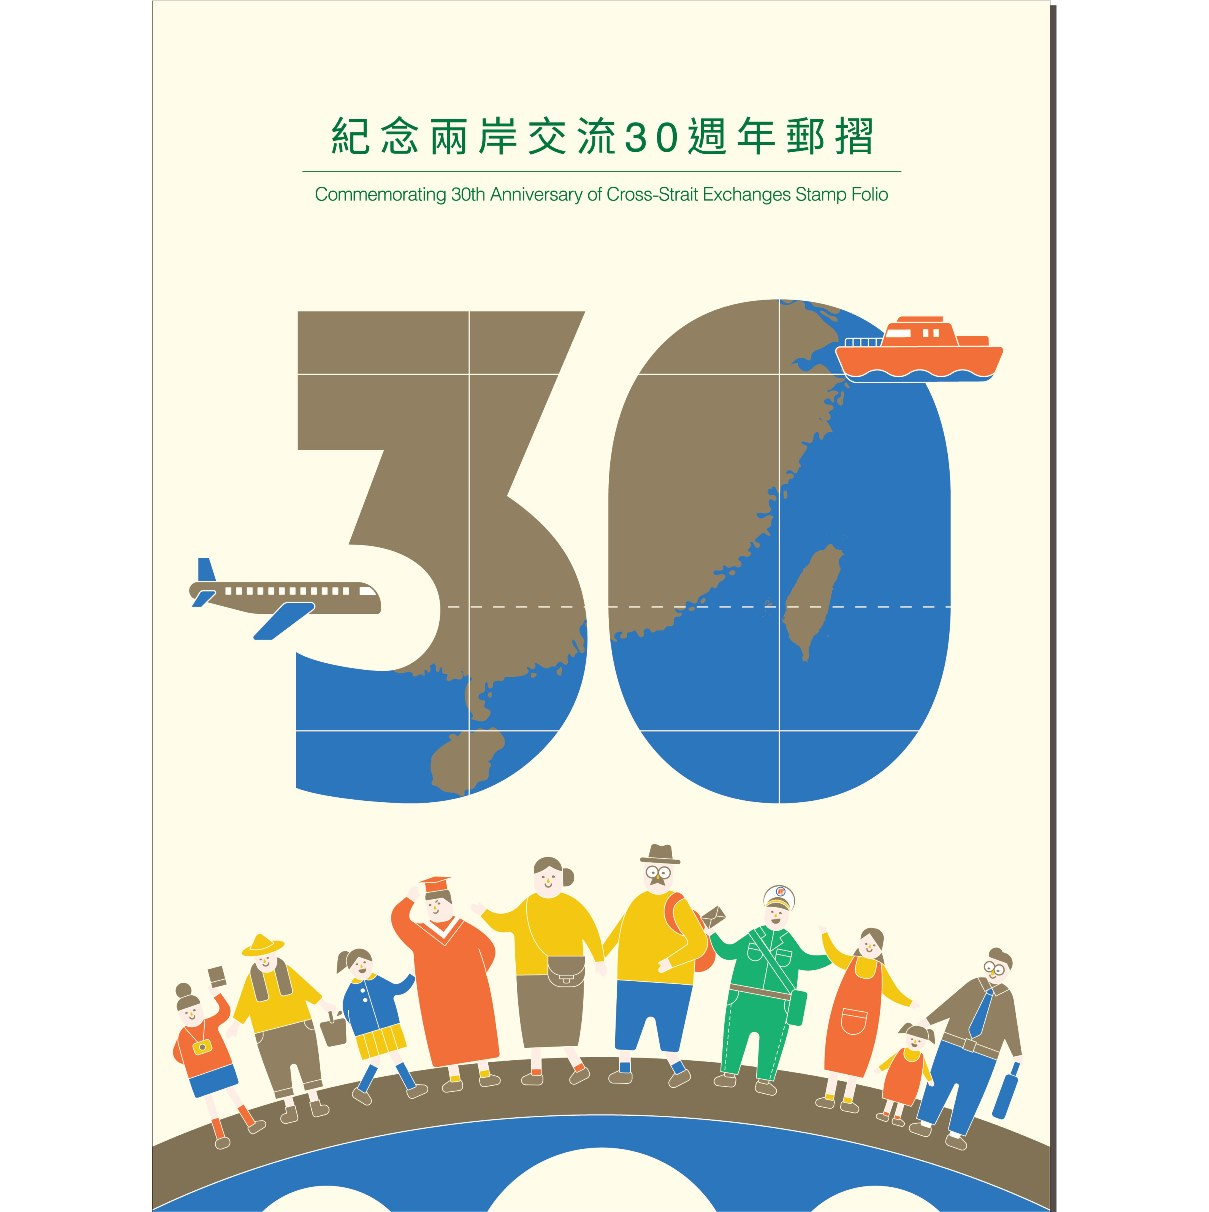 30th Anniversary of Cross-Strait Exchanges Postage Stamps Folio